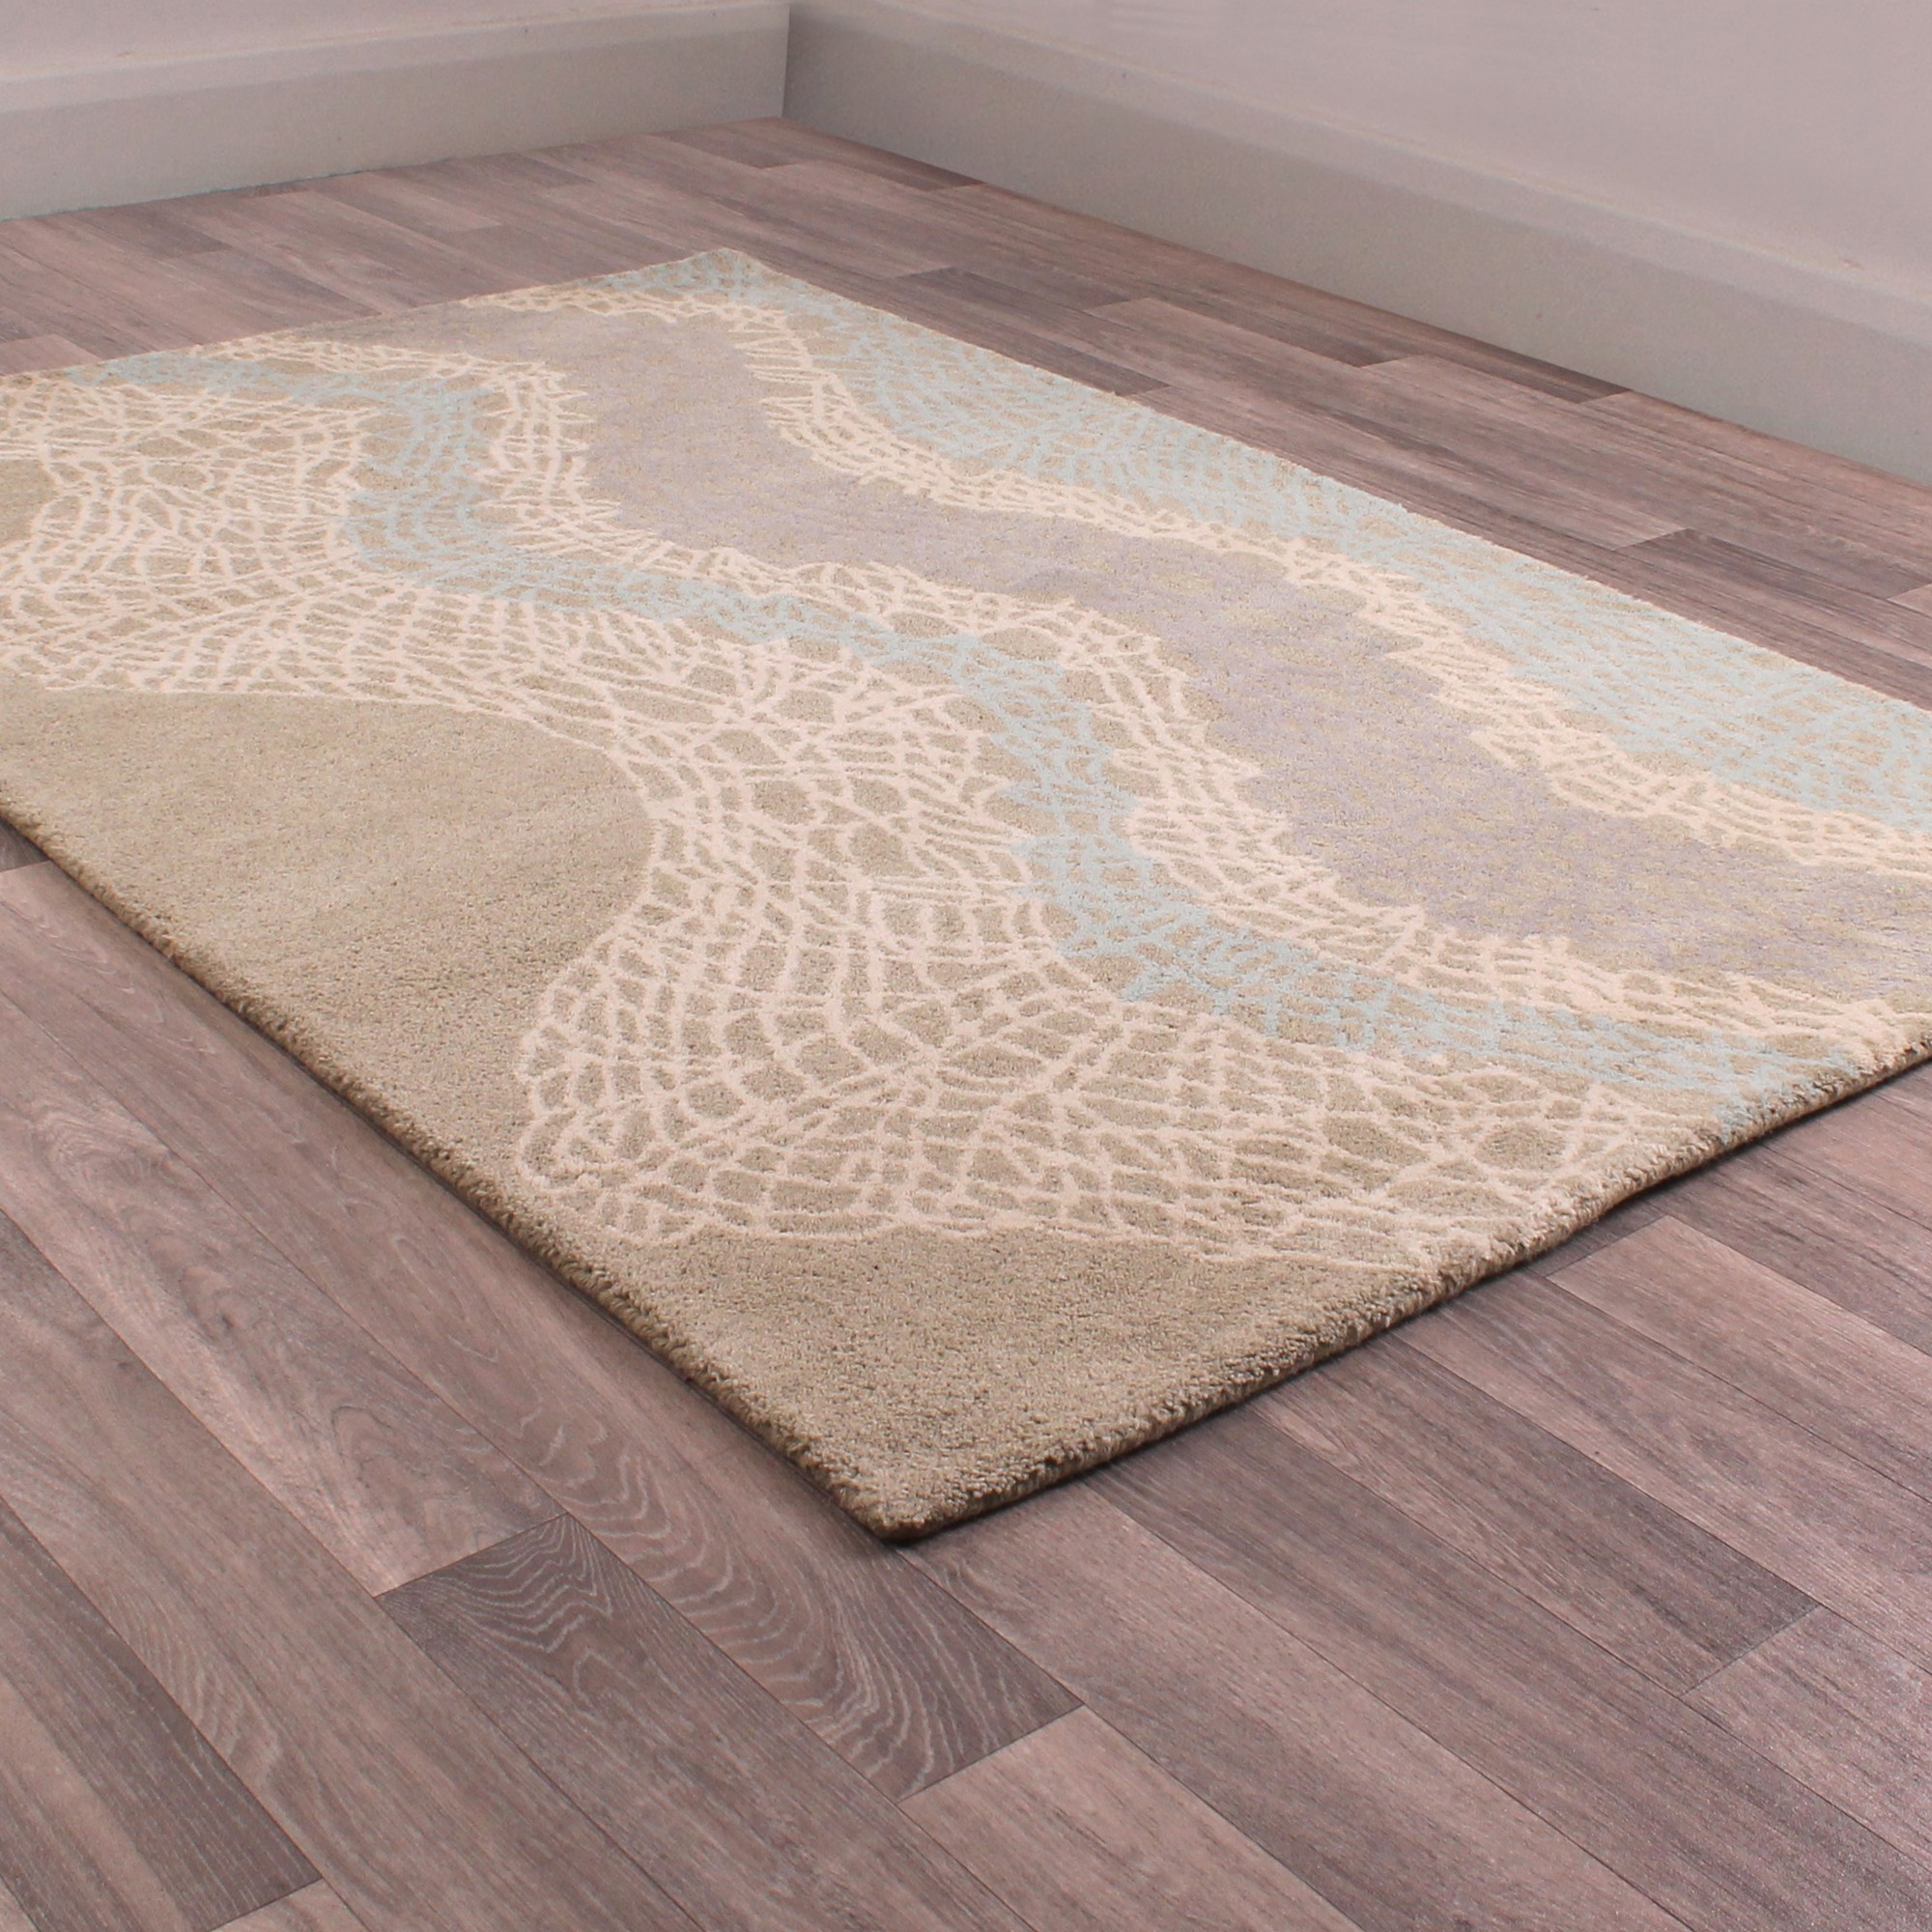 Fusion Campeche Rugs in Grey and Blue